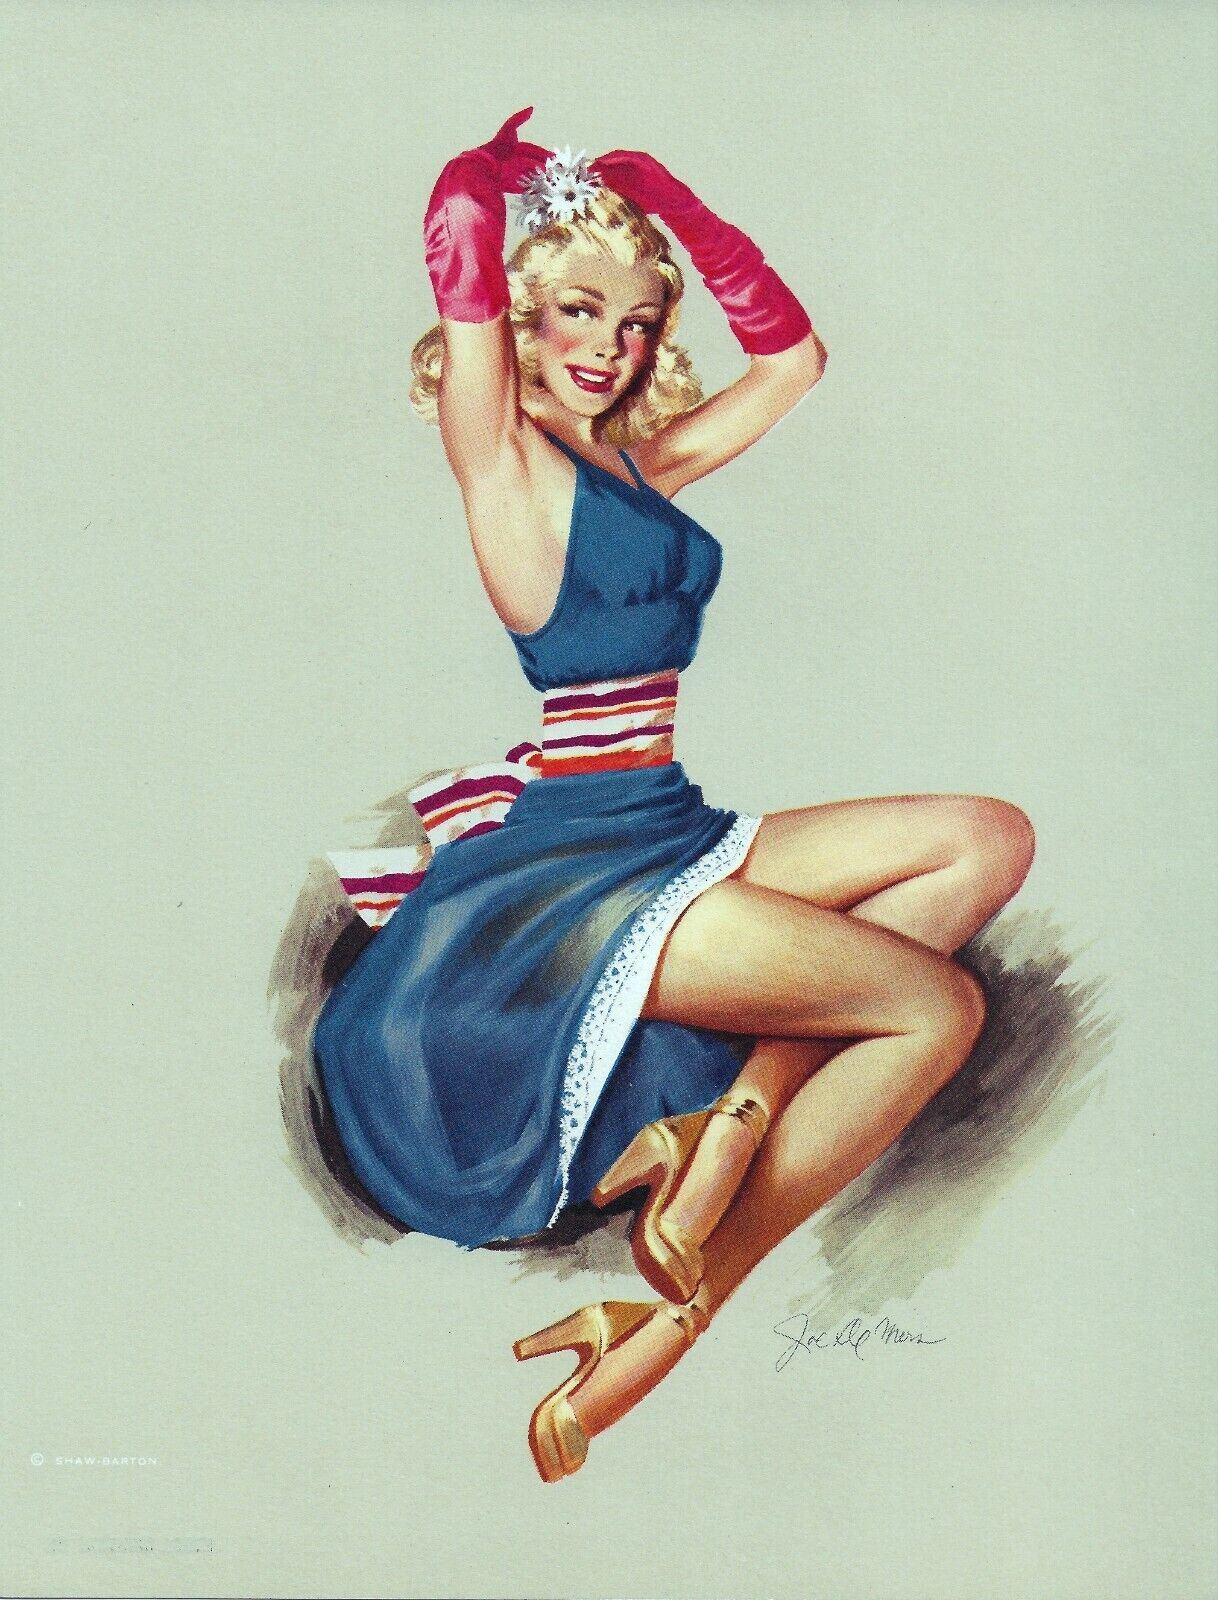 1950S ORIGINAL PIN UP GIRL LITHOGRAPH BY DE MERS TGHE FINISHING TOUCH 156 - $5.00